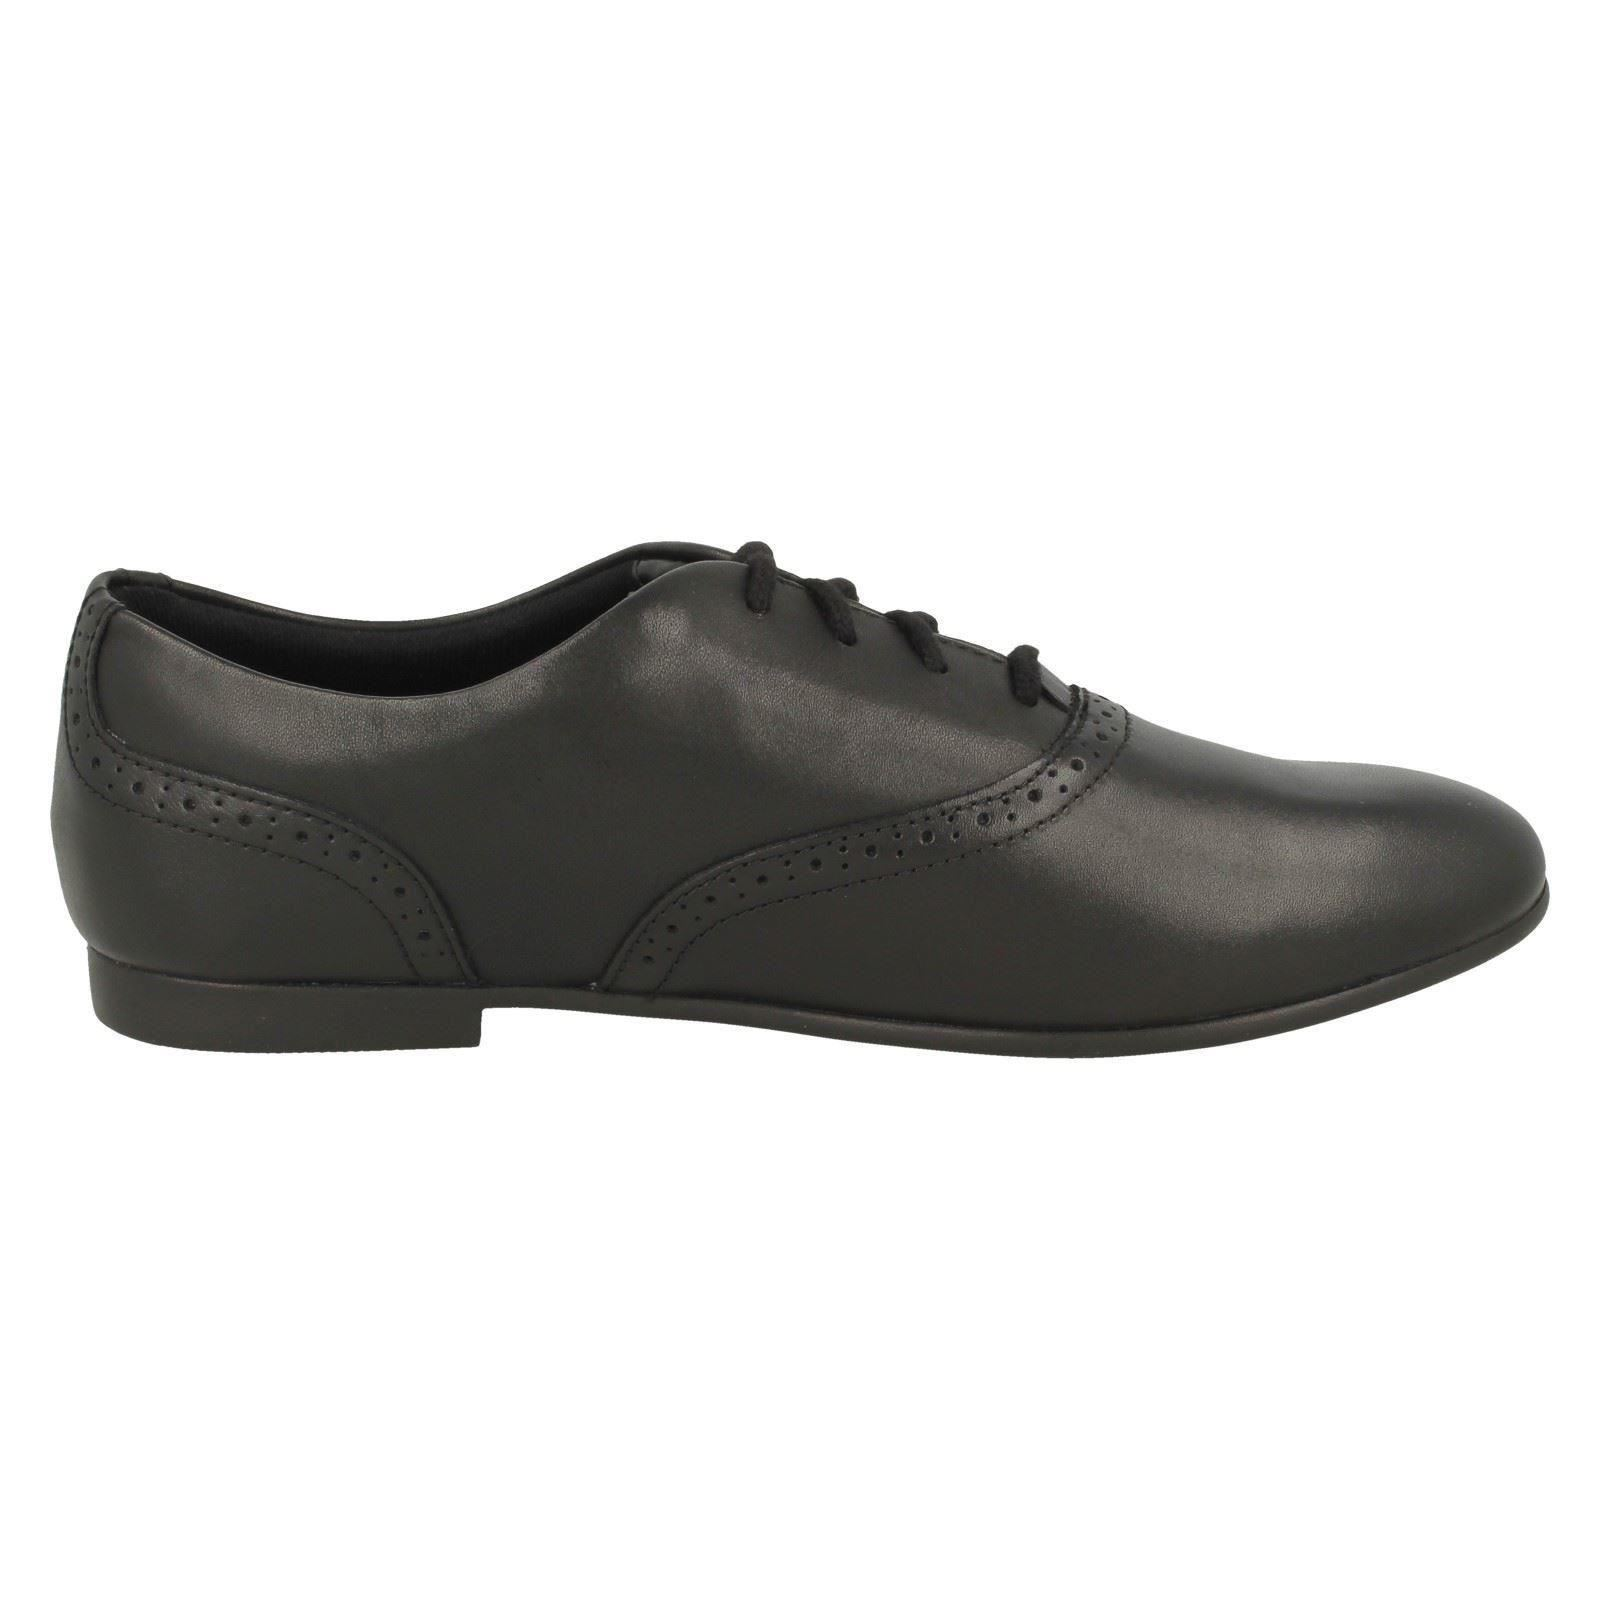 Clarks Girls Lace Up Brogue School Shoes /'Jules Walk/'